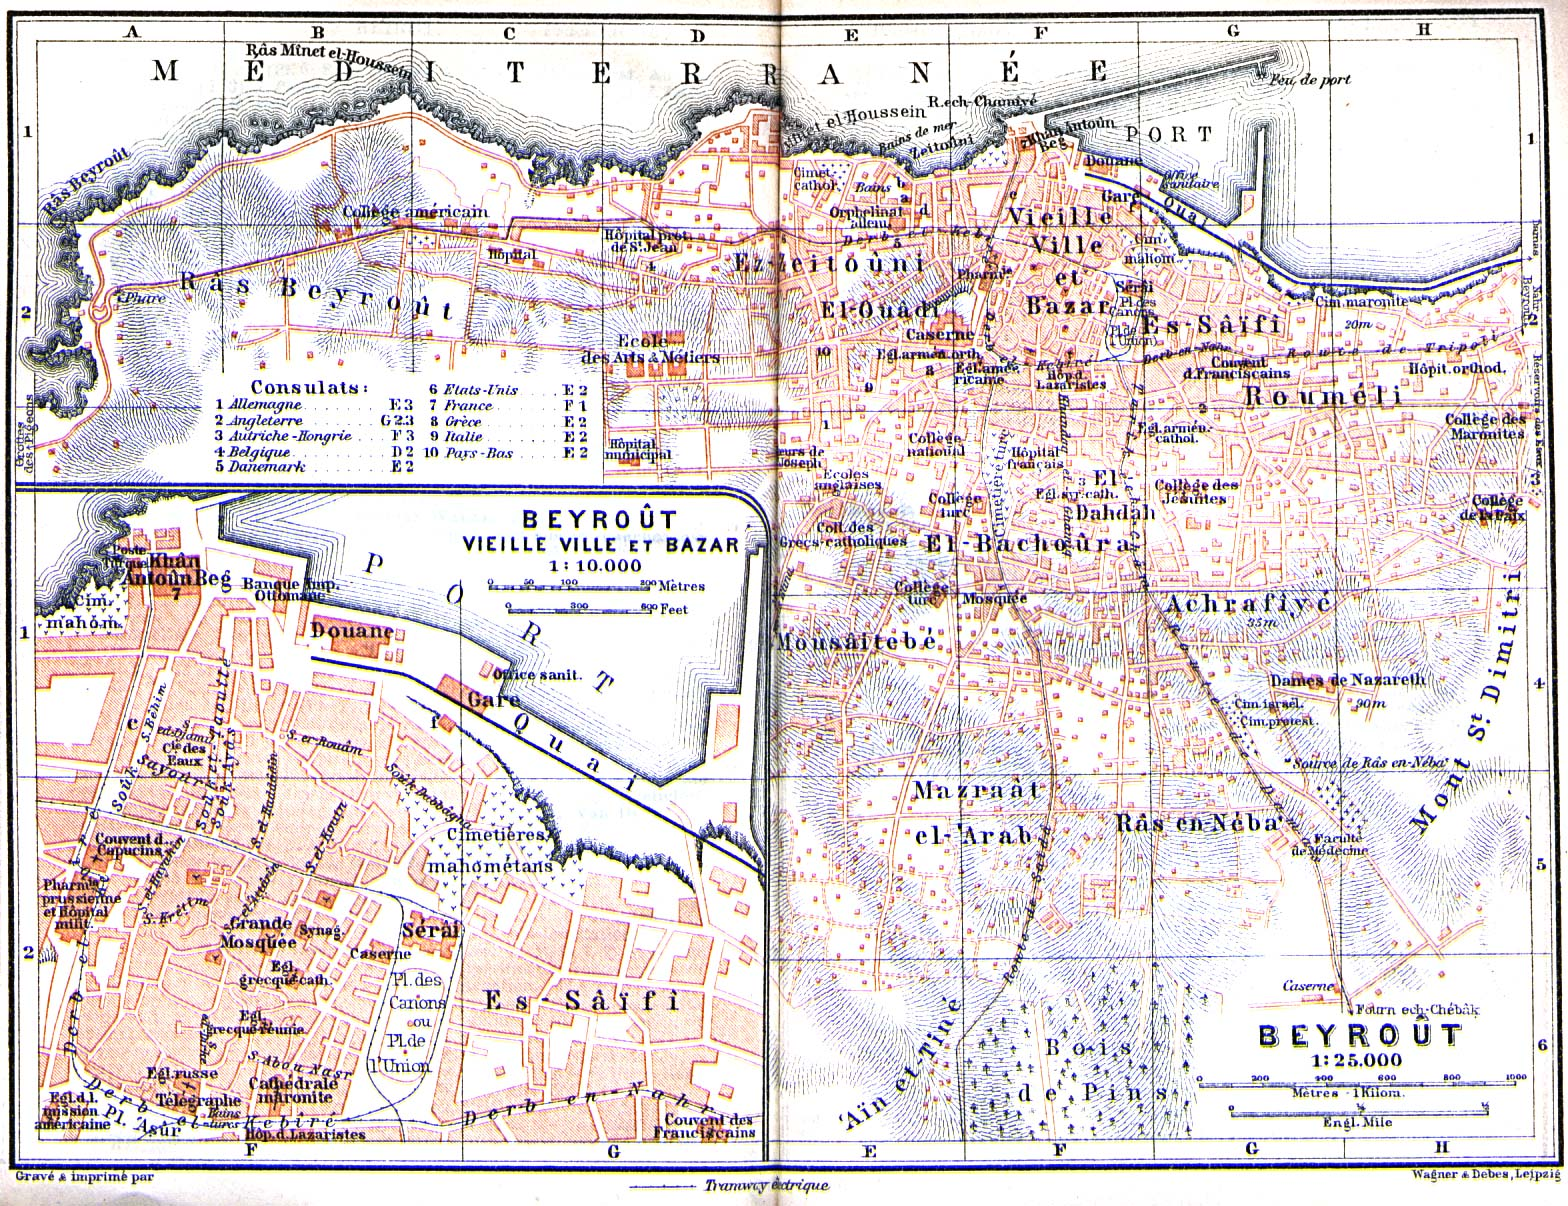 Download free lebanon maps beirut beyrout 1912 gumiabroncs Images